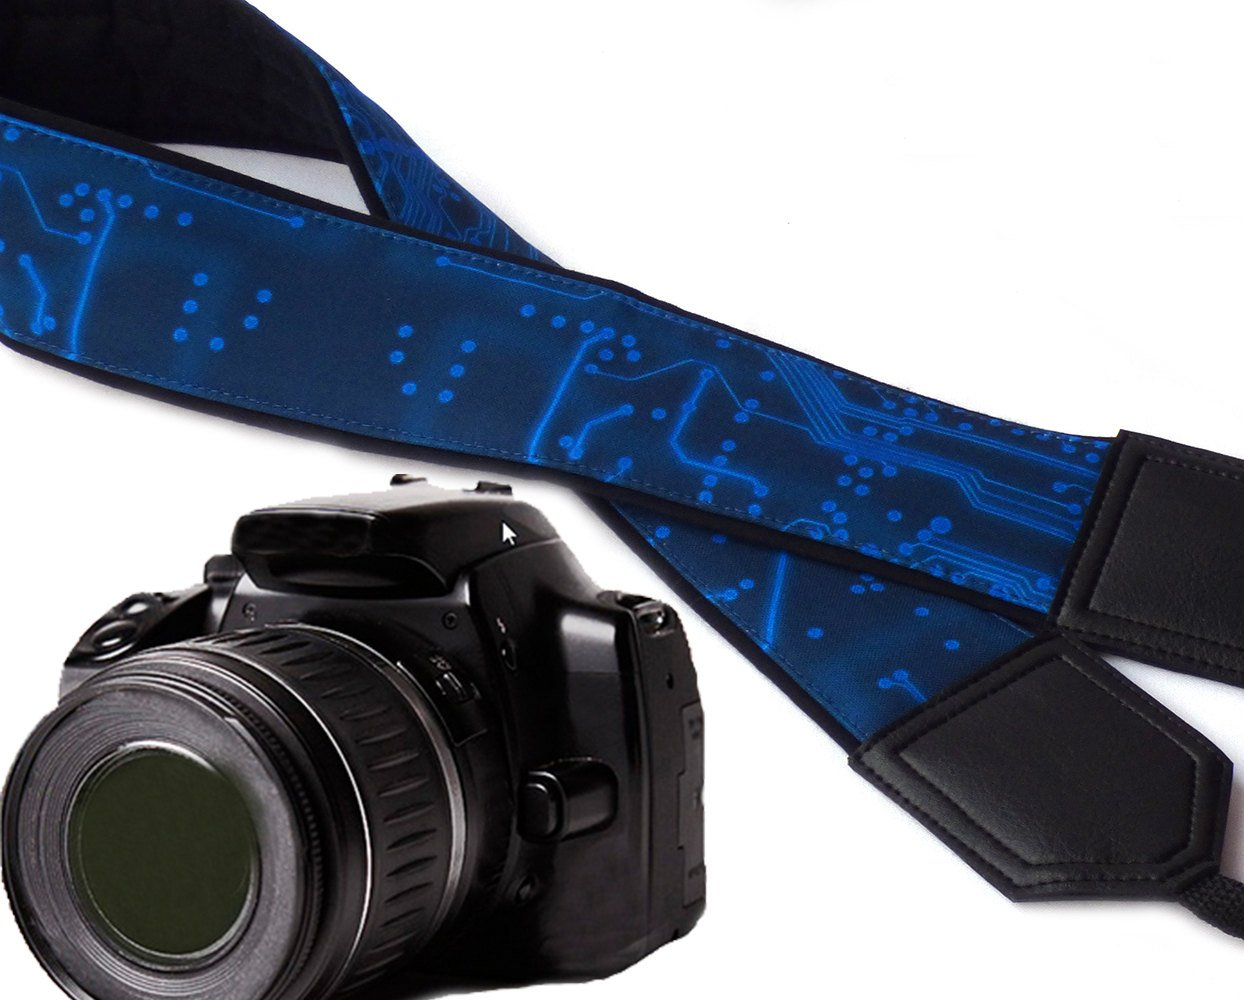 Computer camera strap. Microscheme camera strap. Circuit board camera strap. Black and blue original DSLR / SLR camera strap. Durable, light weight and well padded camera strap. code 00112